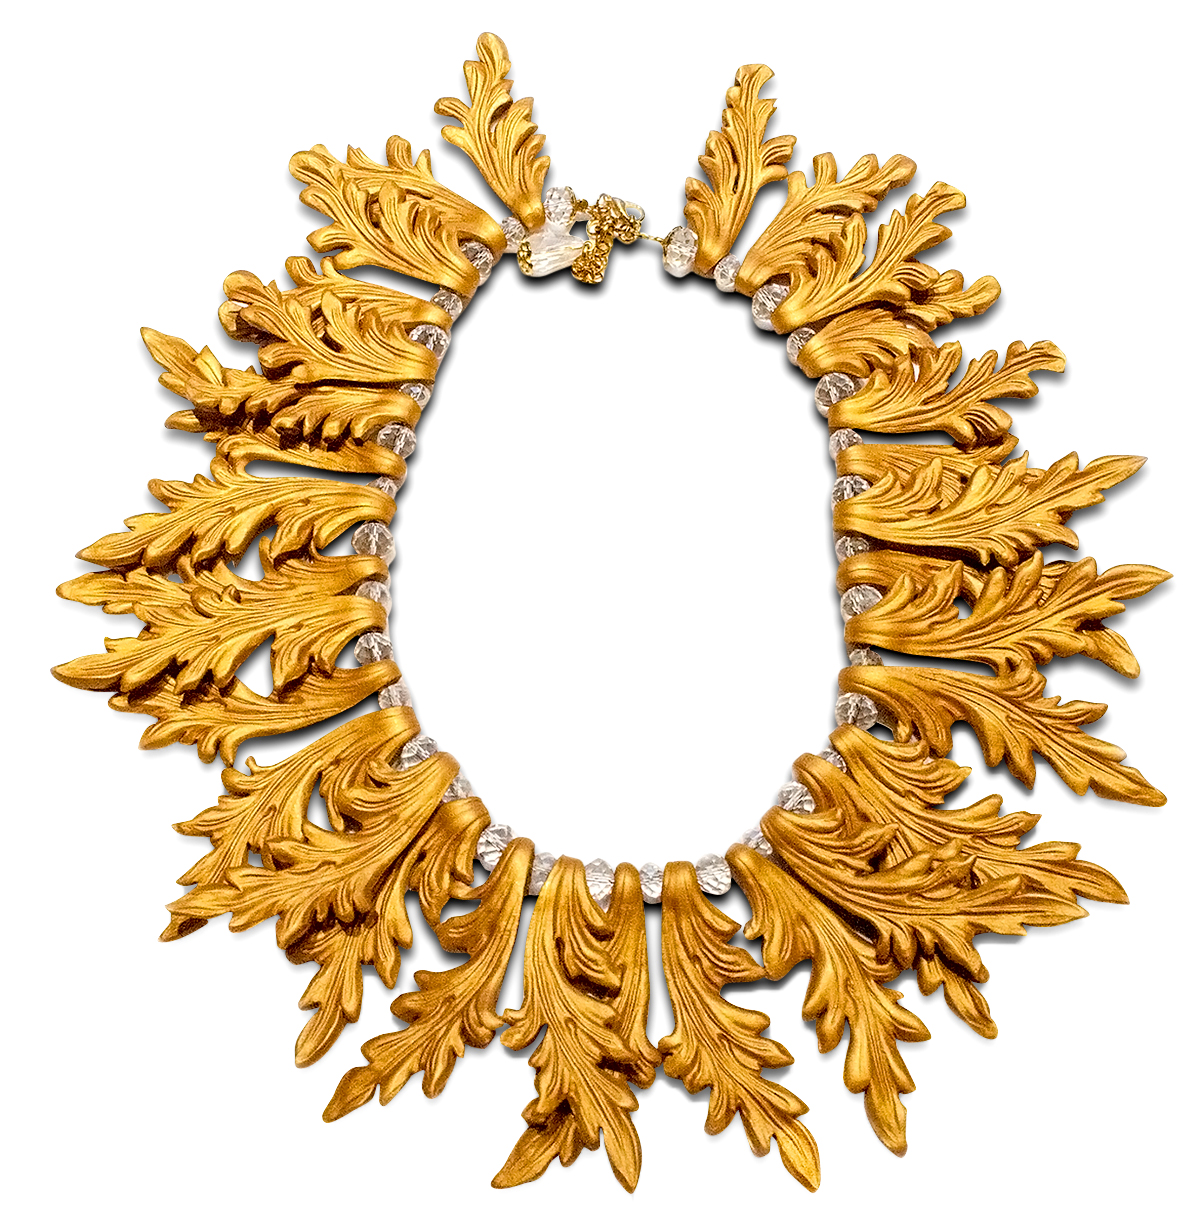 Golden frame statement necklace